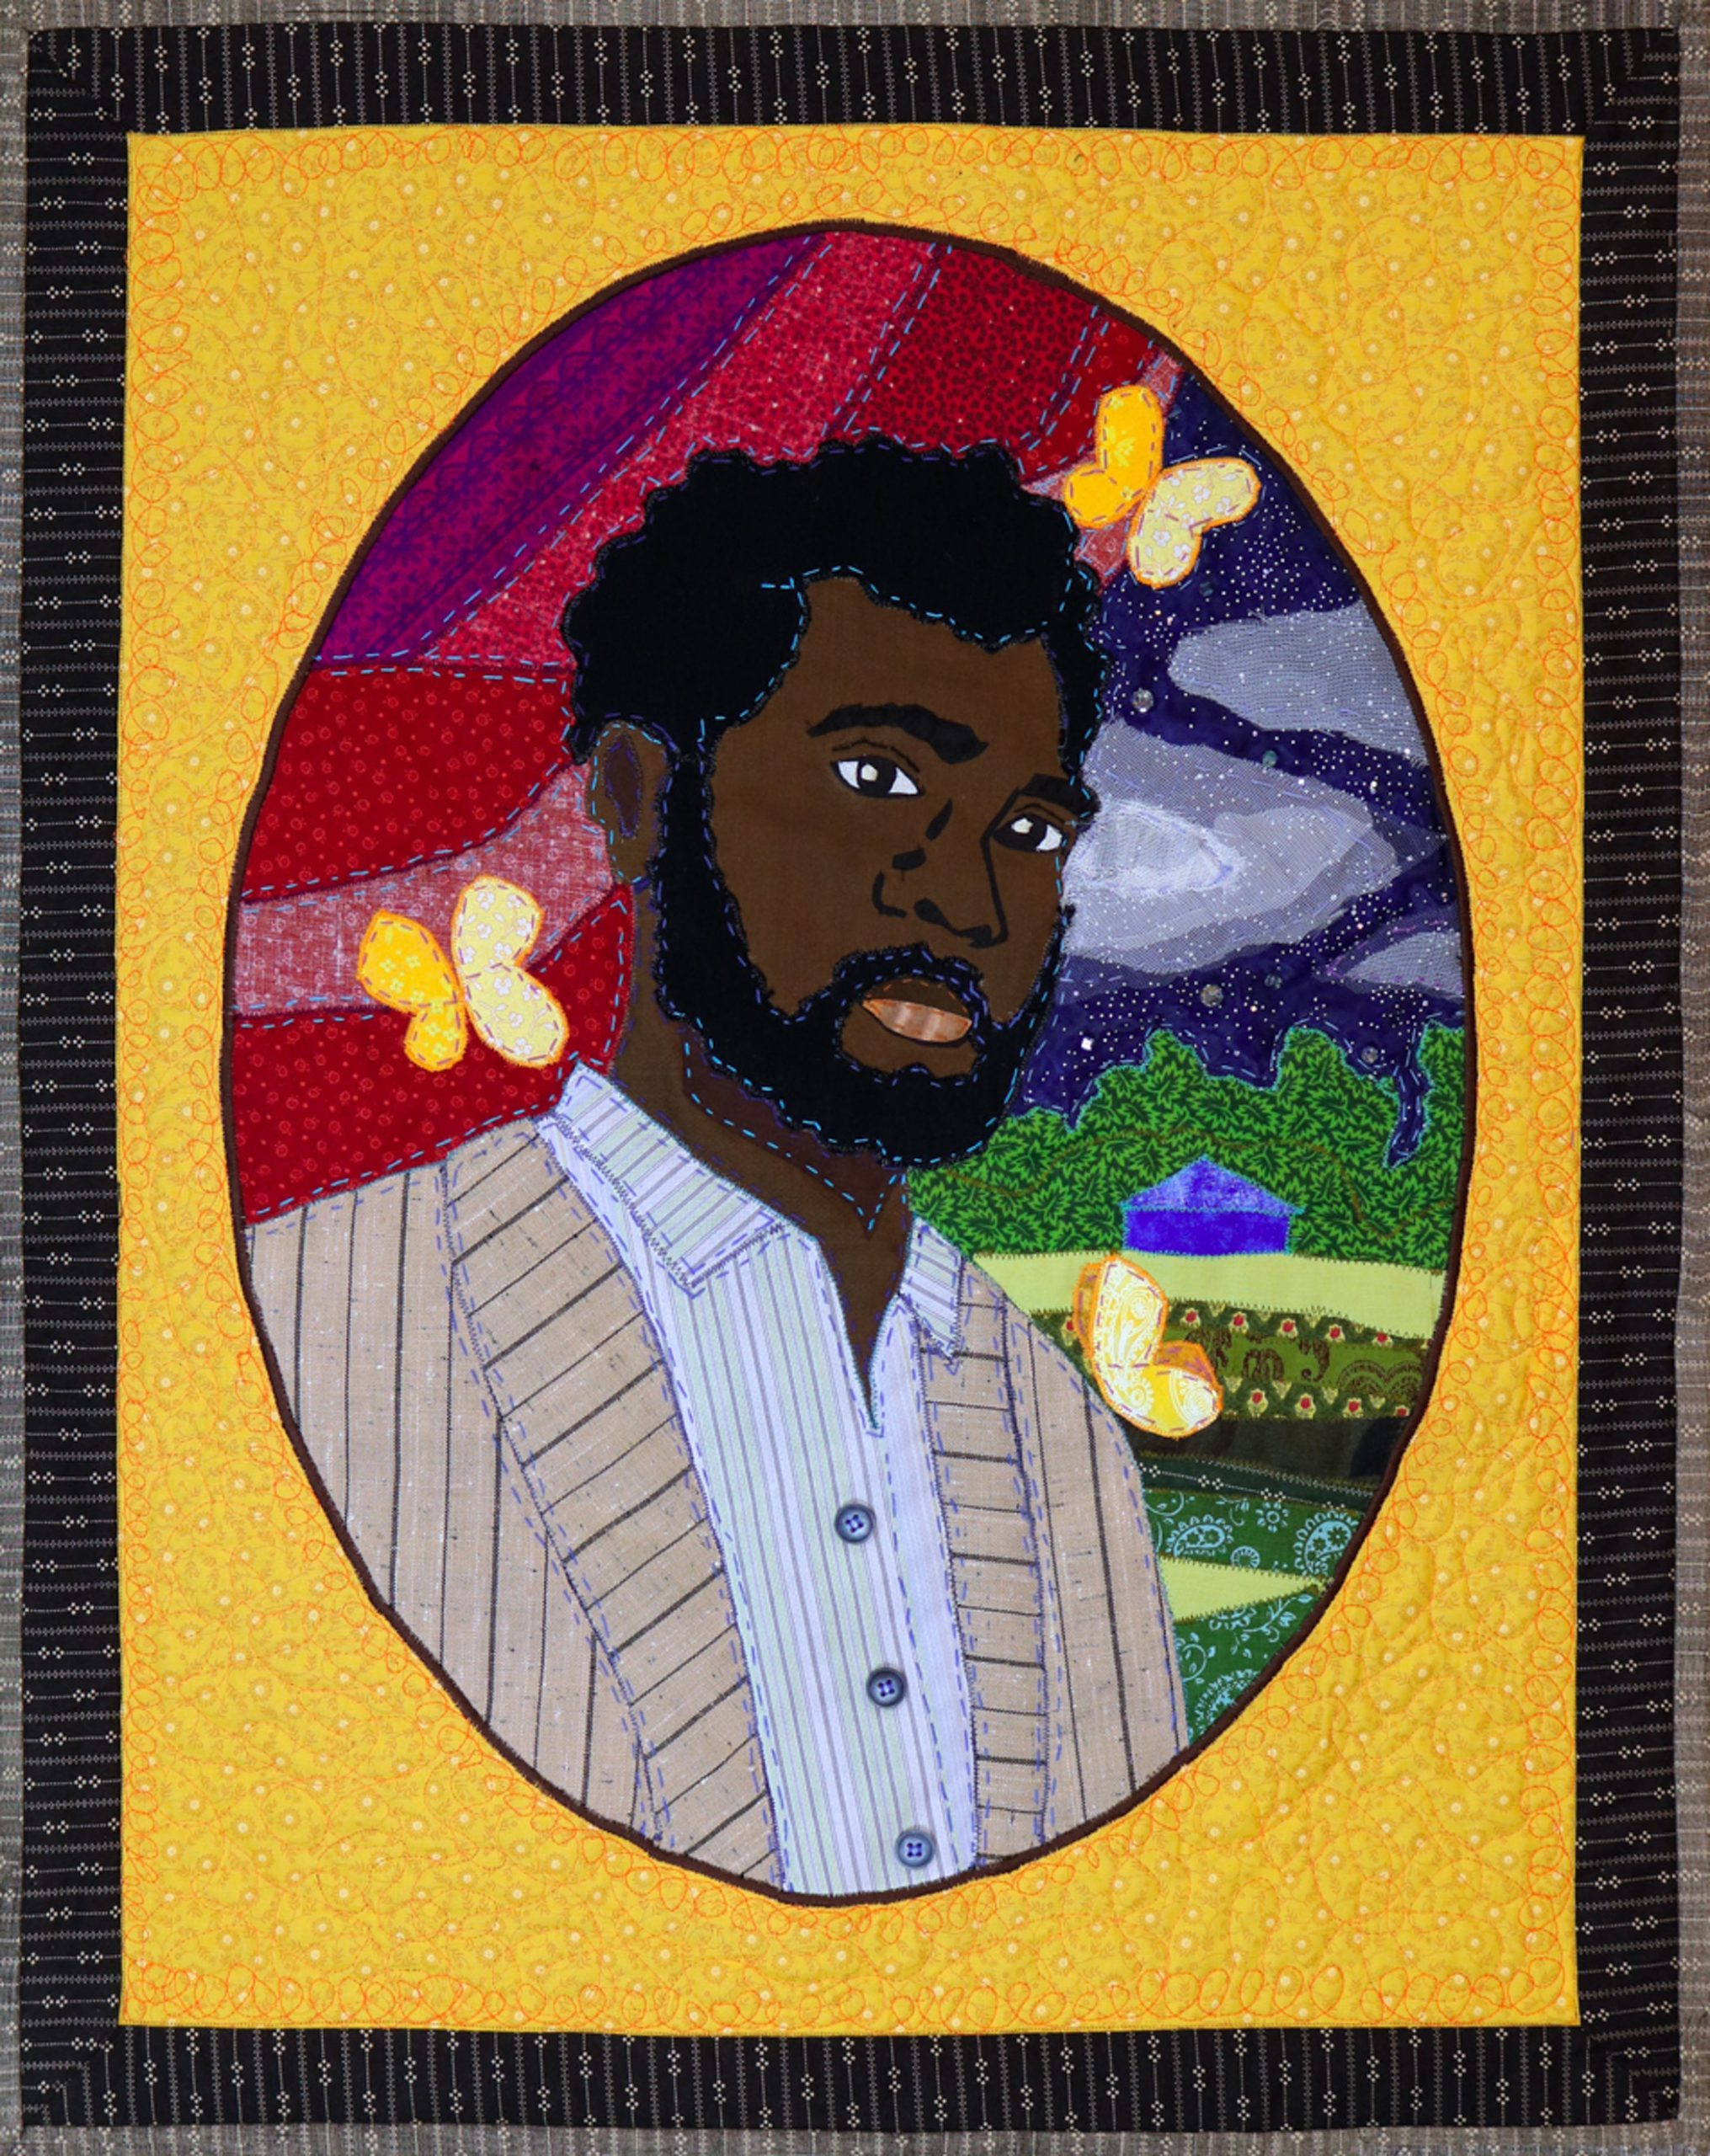 Stephen Towns, Let Not Man Put Asunder: Portrait of Nat Turner, 2018.   Natural and synthetic fabric, nylon tulle, polyester and cotton thread, metallic thread, crystal glass beads, resin buttons. 30 x 24 inches. Courtesy of the artist.